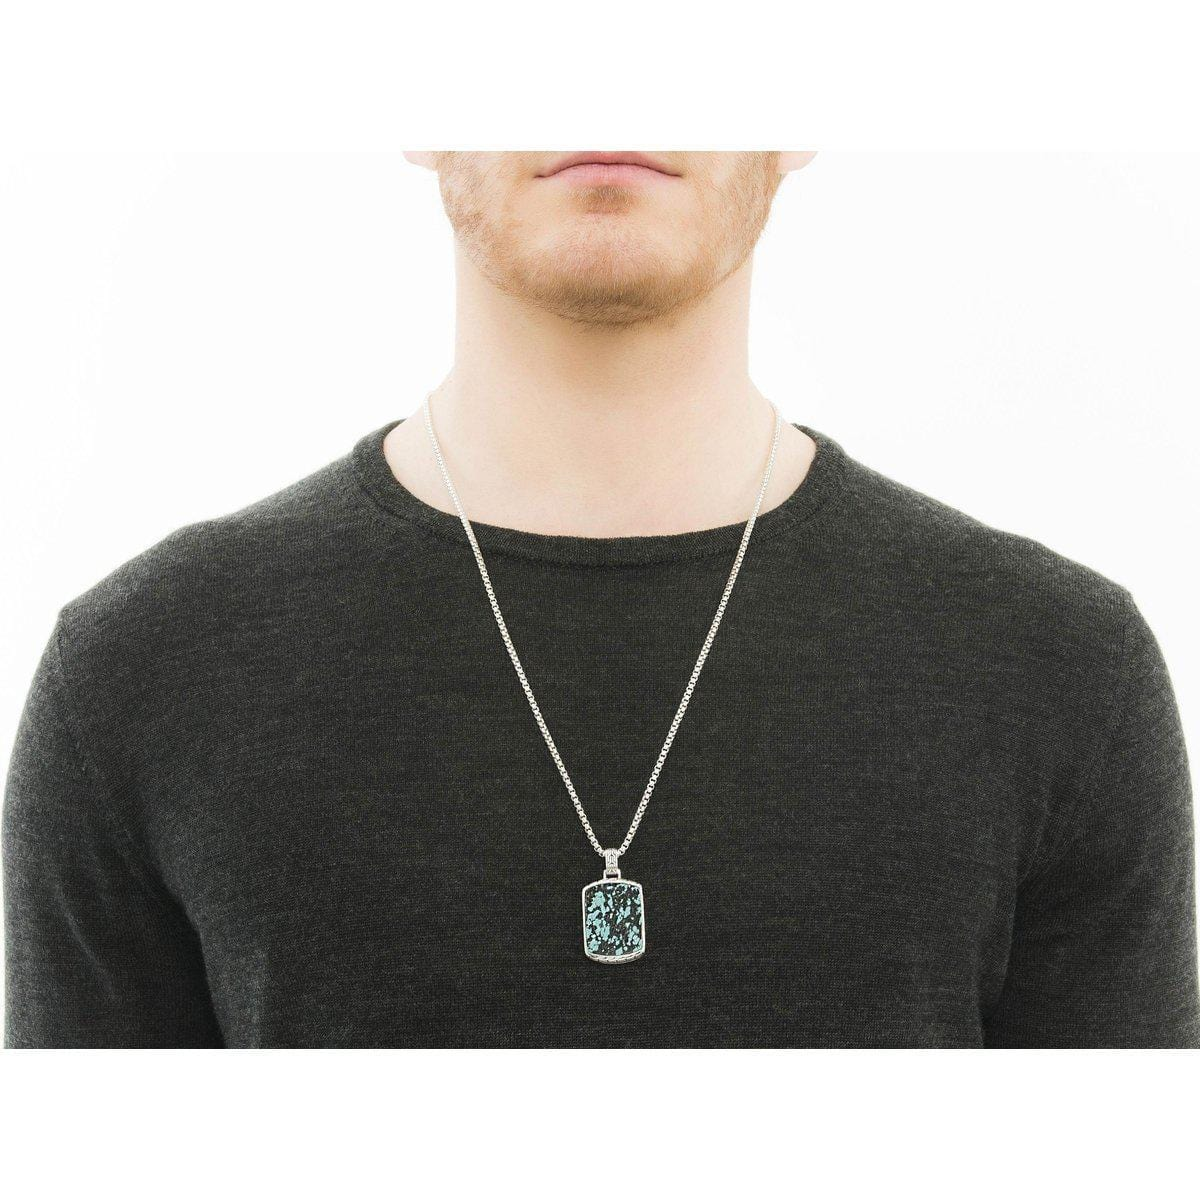 Classic Chain Men's Dog Tag Necklace - NBS996681TQBM-John Hardy-Renee Taylor Gallery